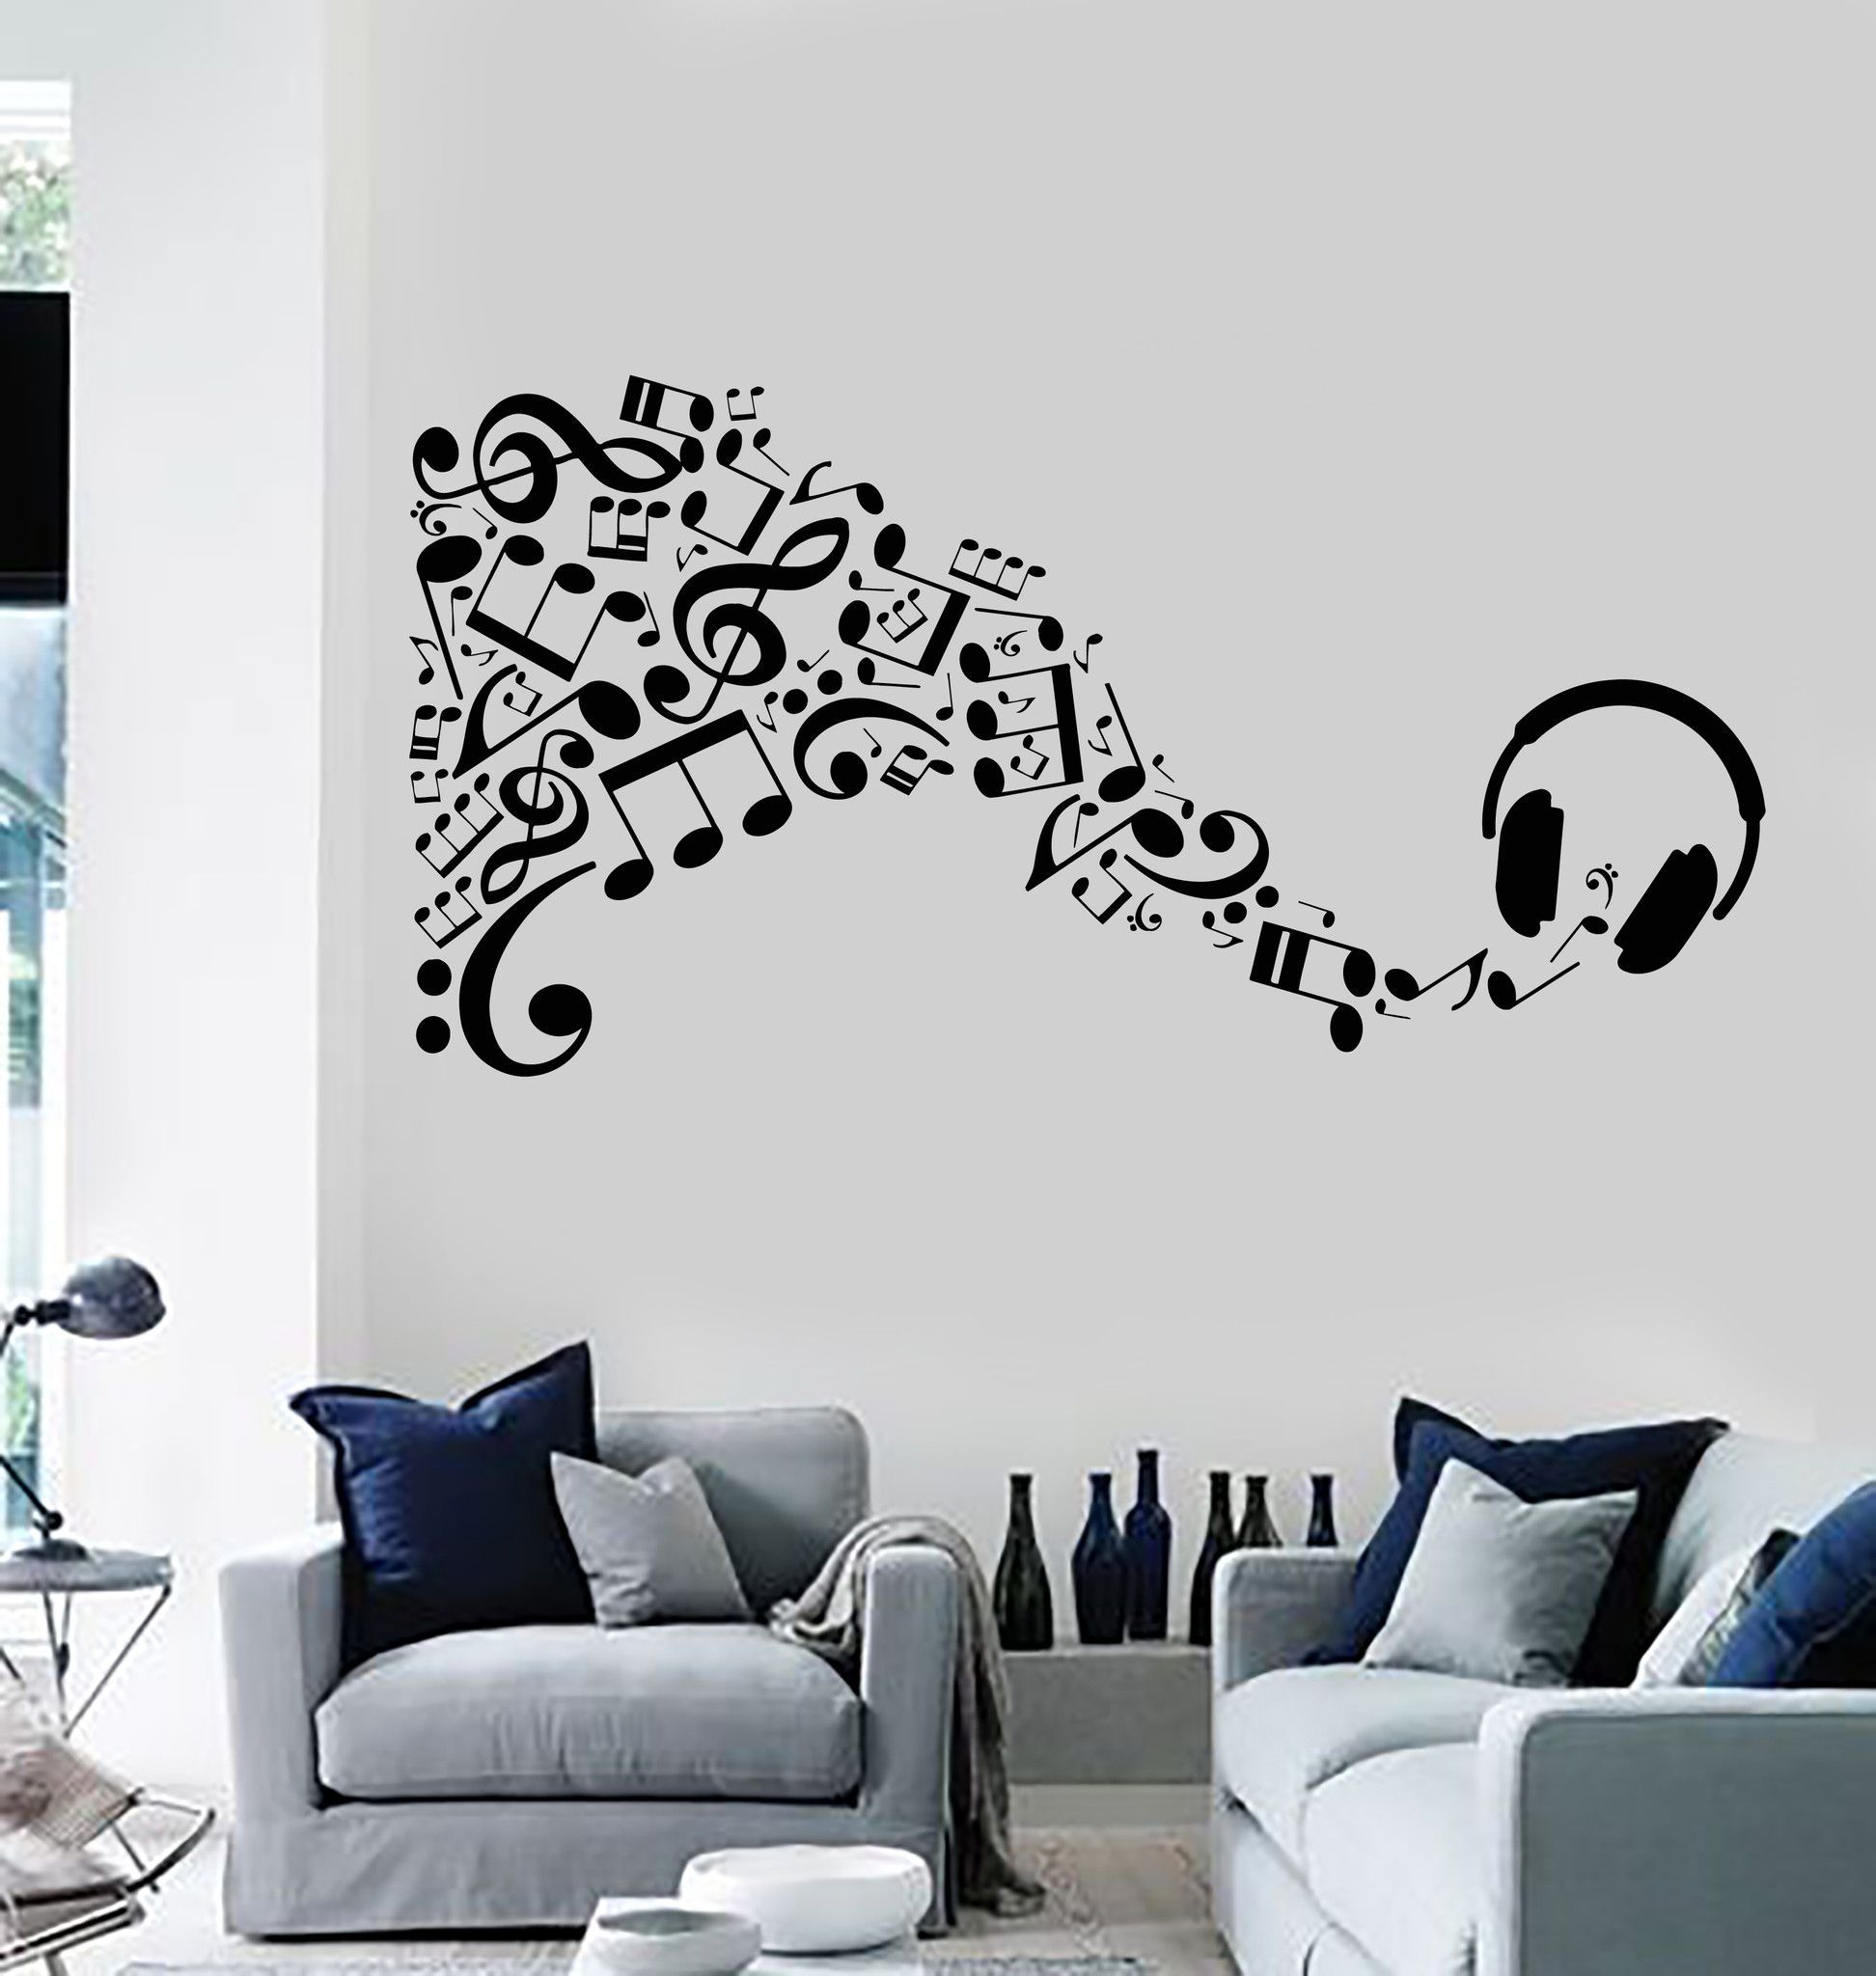 Vinyl wall decal headphones musical notes music art stickers ig4134 wall decals headphones - Music note wallpaper for walls ...